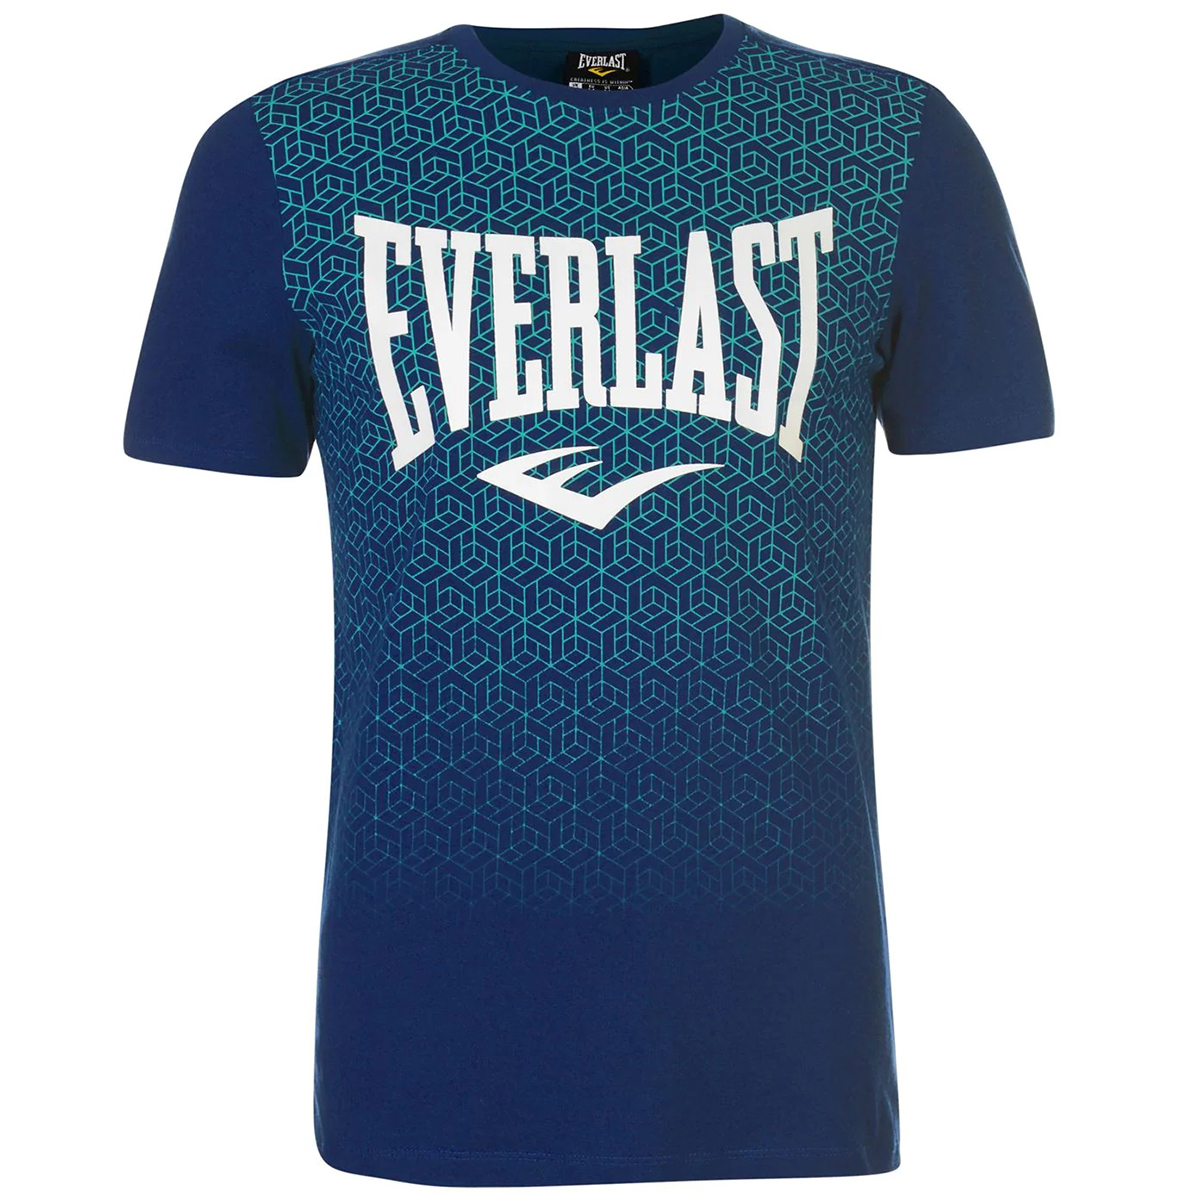 Everlast Men's Geo Print Short-Sleeve Tee - Blue, XXL